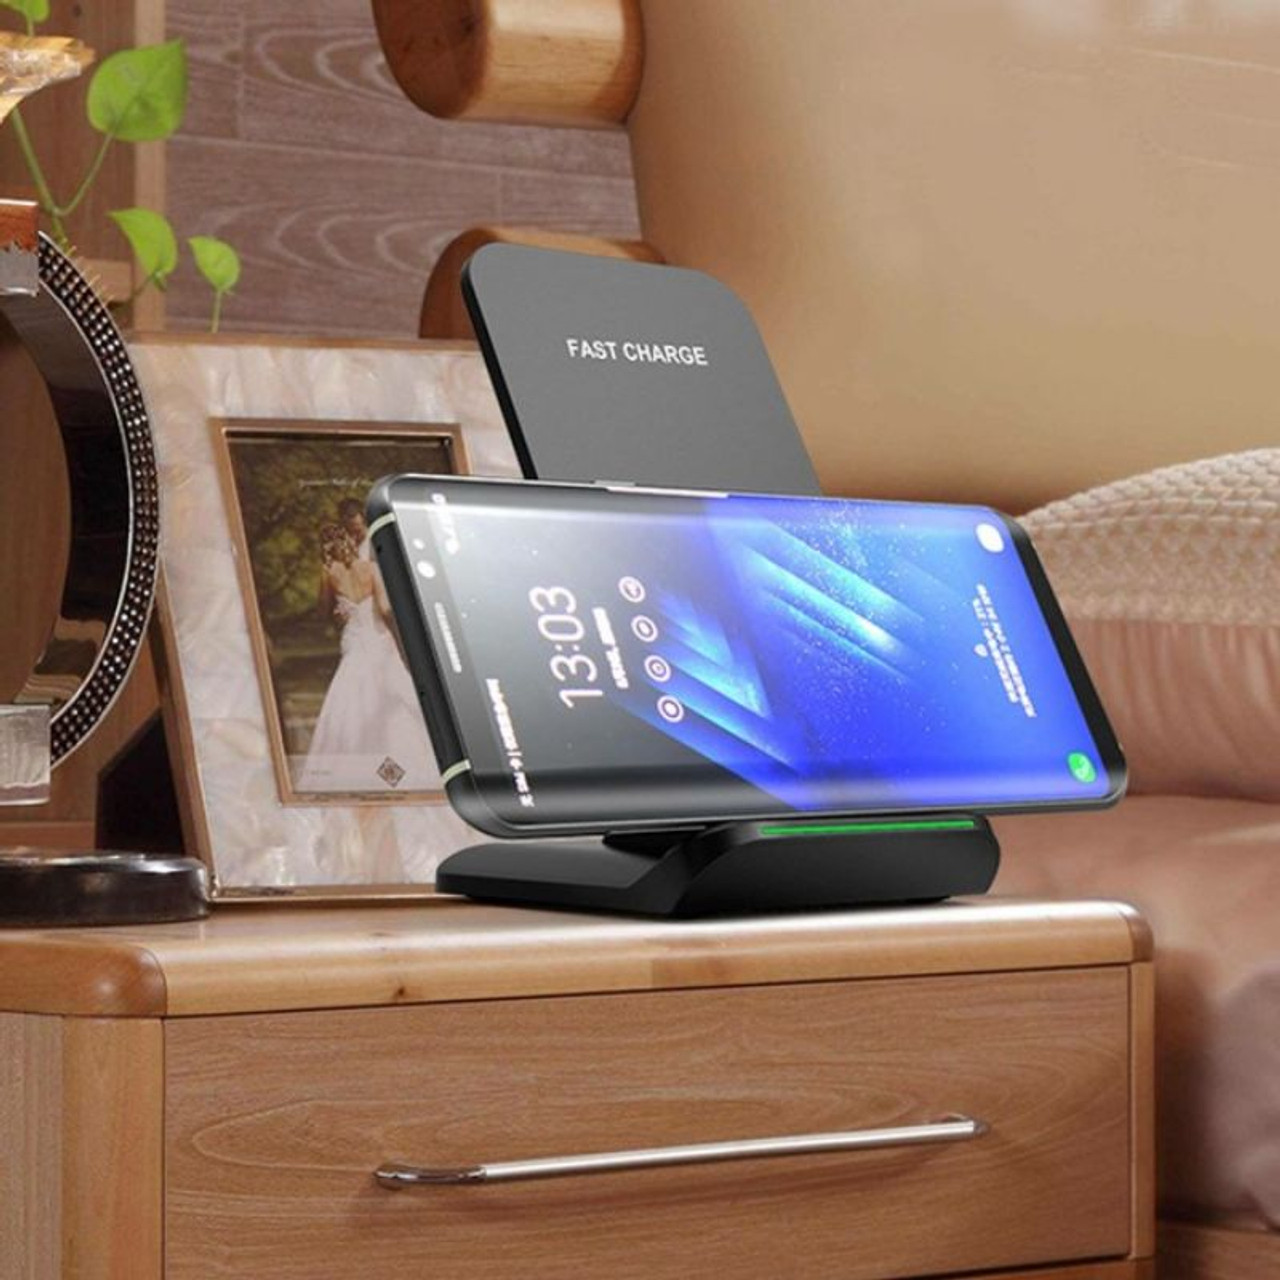 10W Wireless Fast Charger for iPhone, Samsung and all Qi Devices